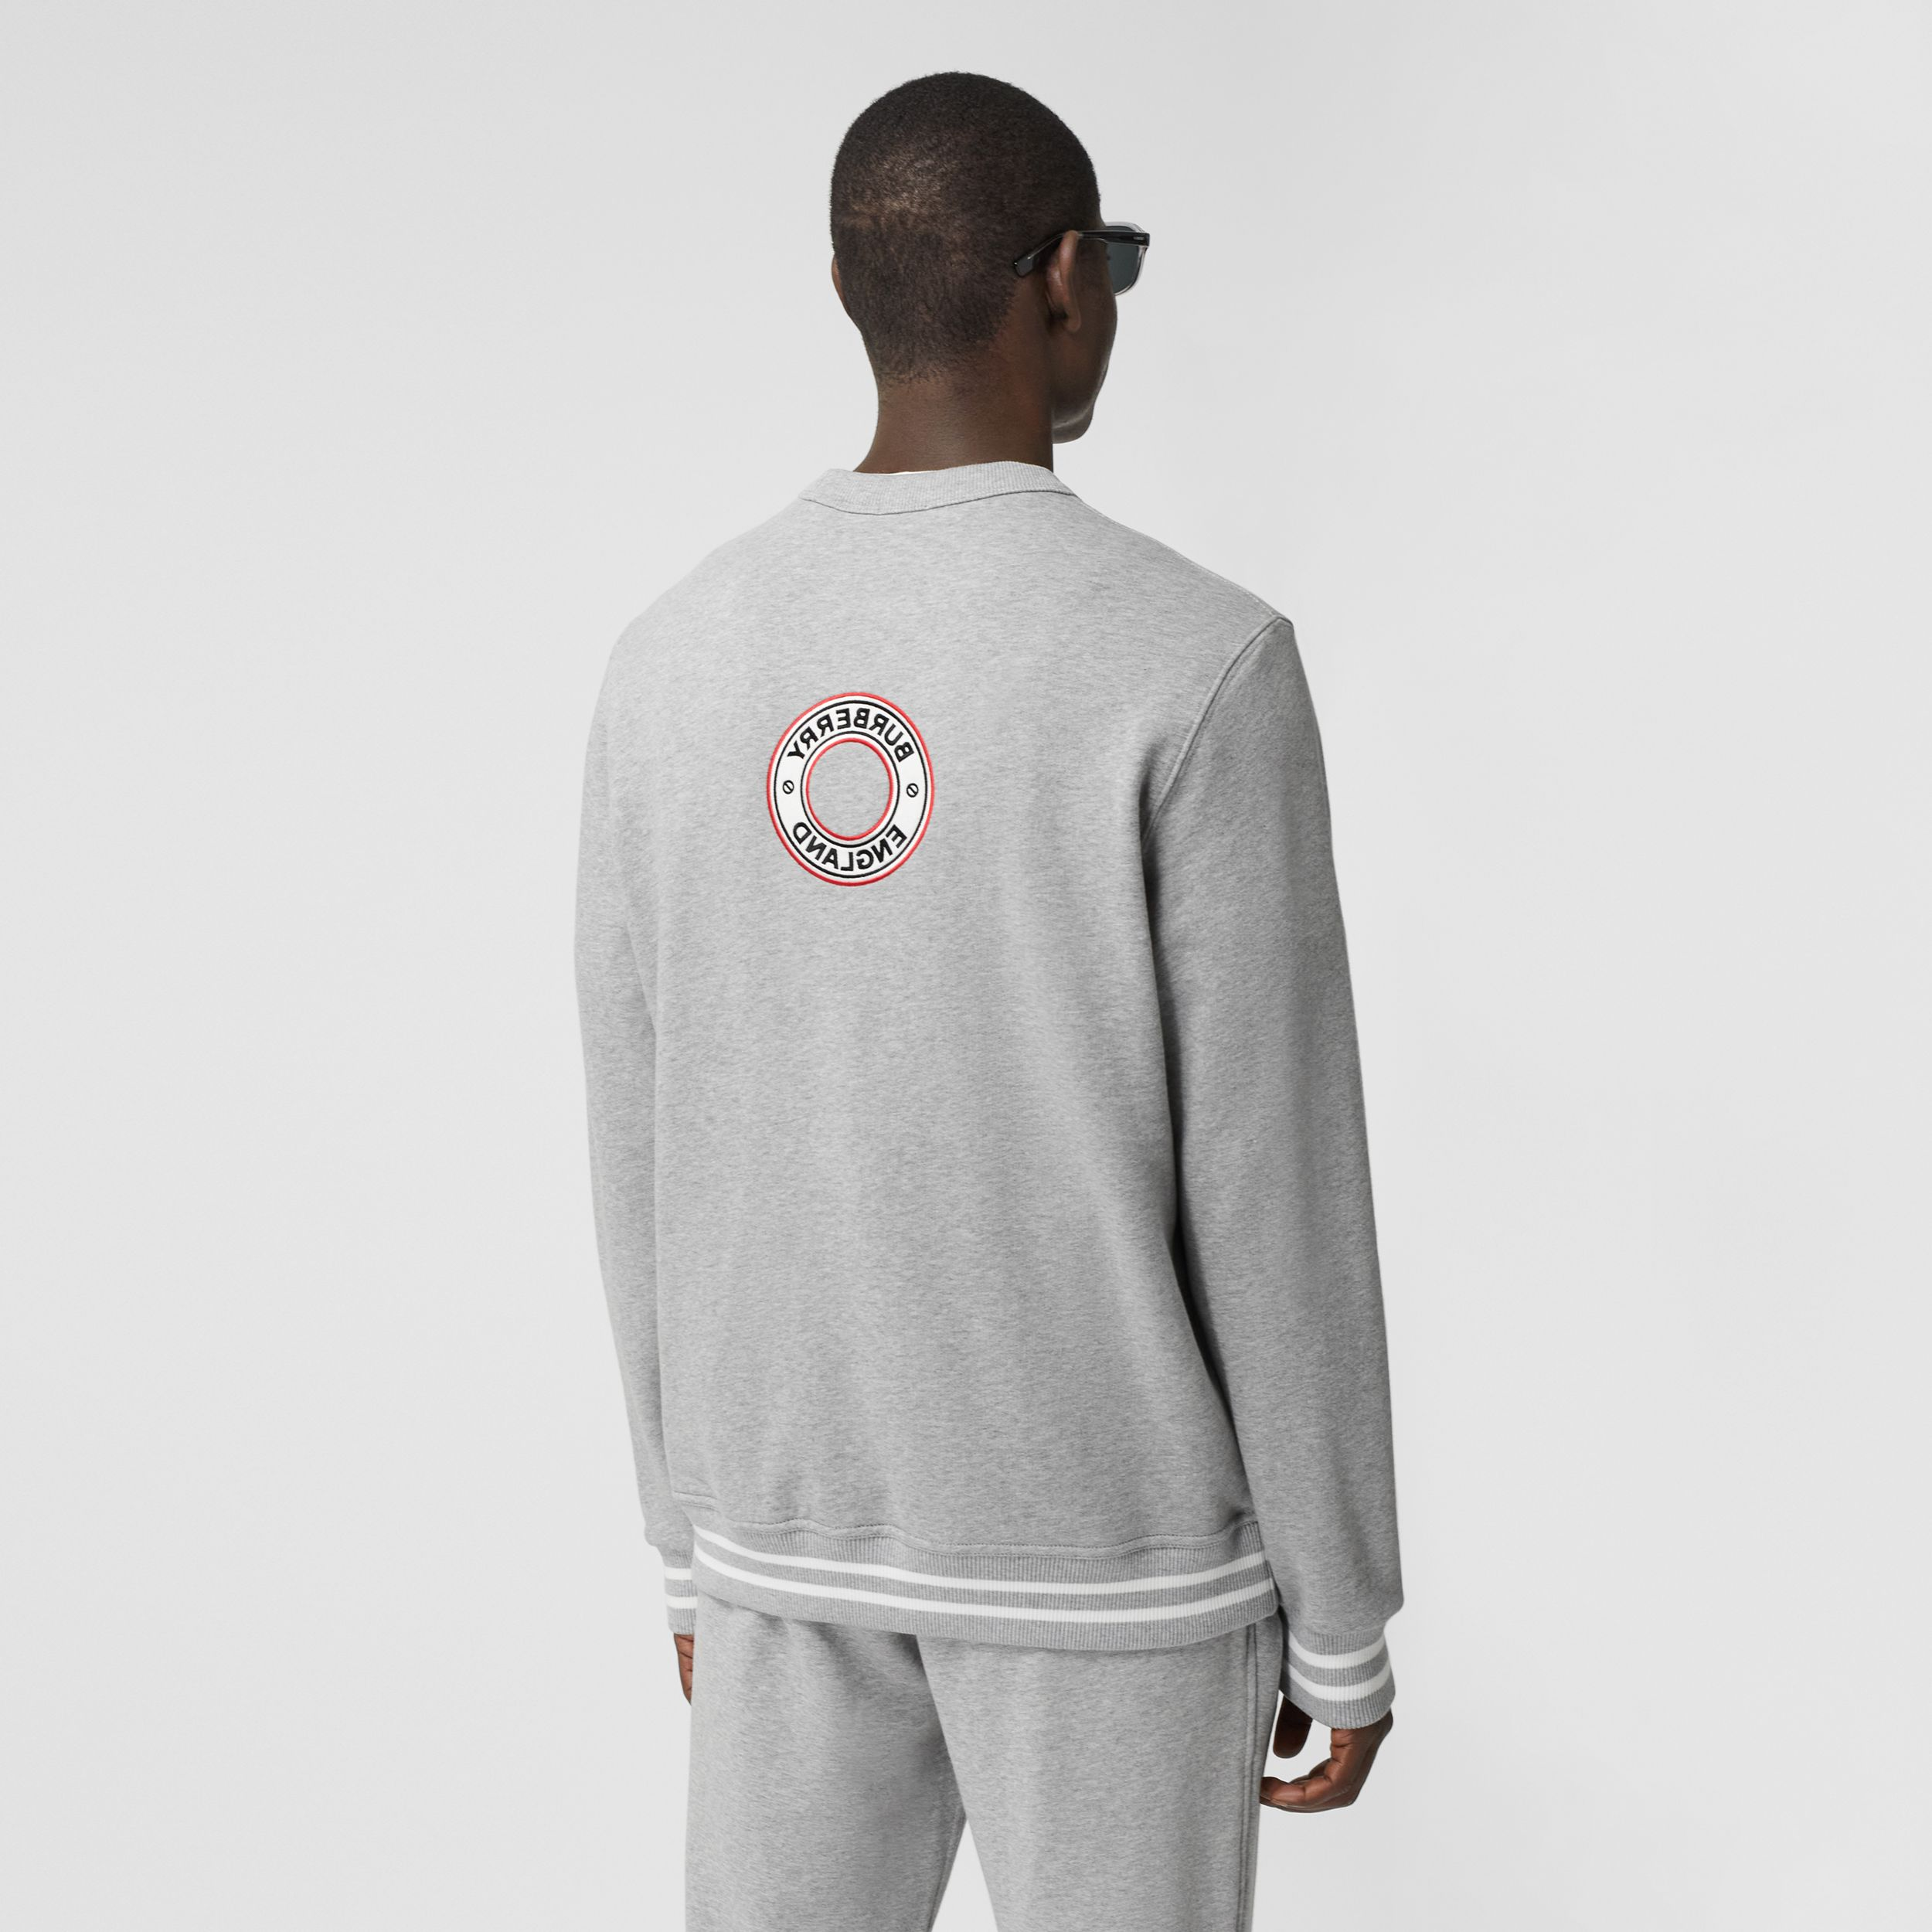 Logo Graphic Appliqué Cotton Sweatshirt in Pale Grey Melange - Men | Burberry Hong Kong S.A.R. - 3